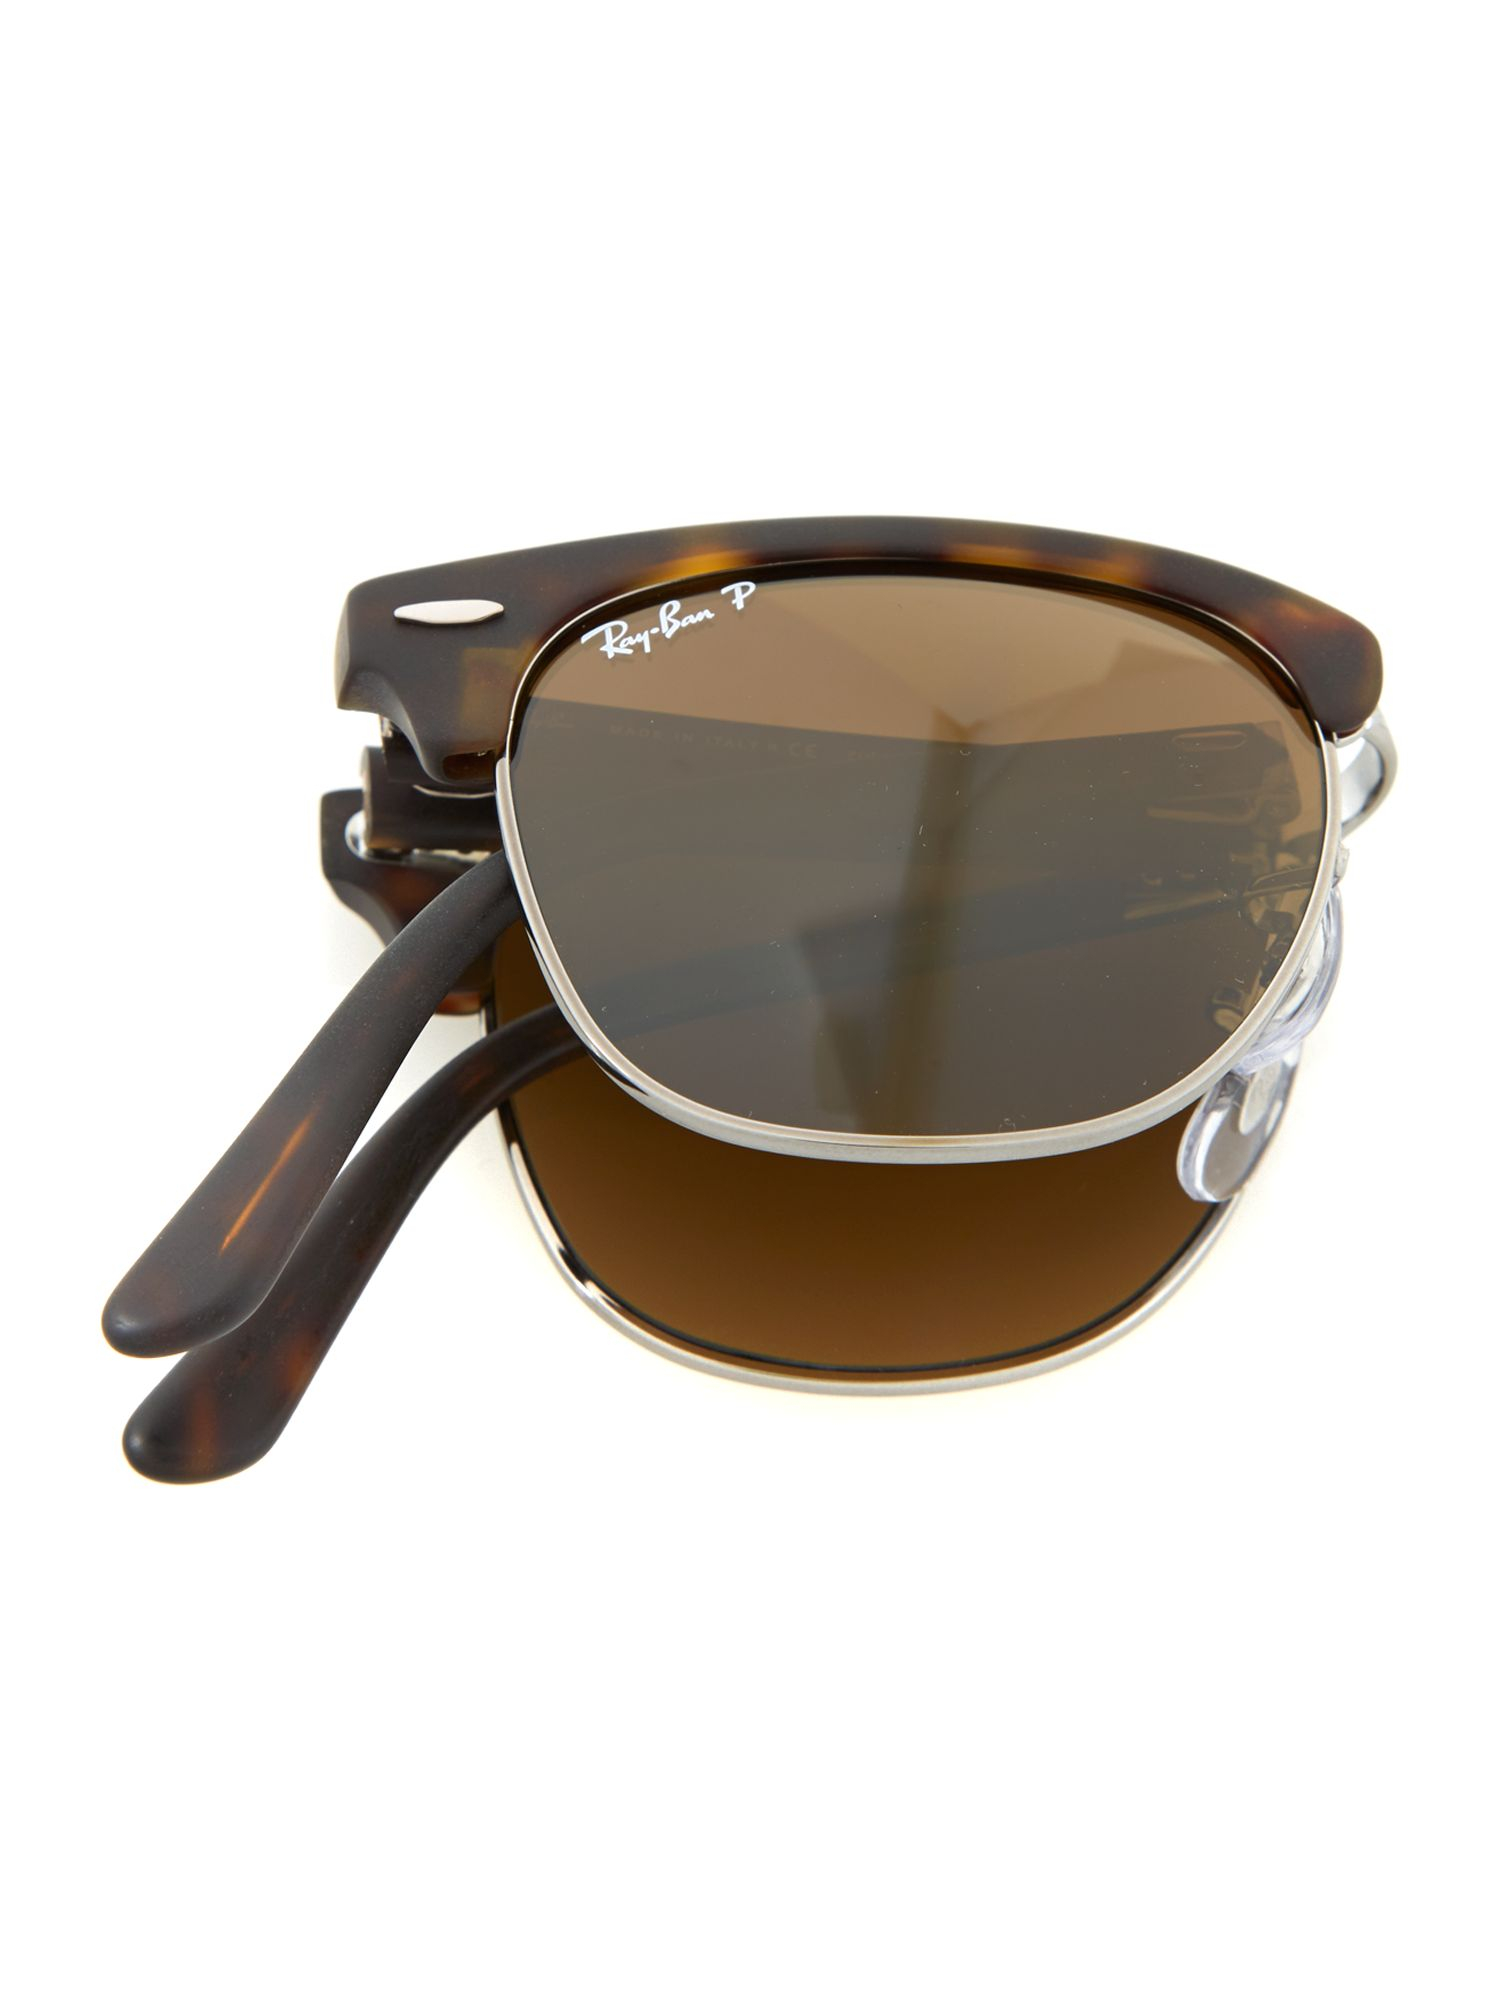 ray ban unisex sunglasses clubmaster  gallery. previously sold at: house of fraser · men's ray ban clubmaster